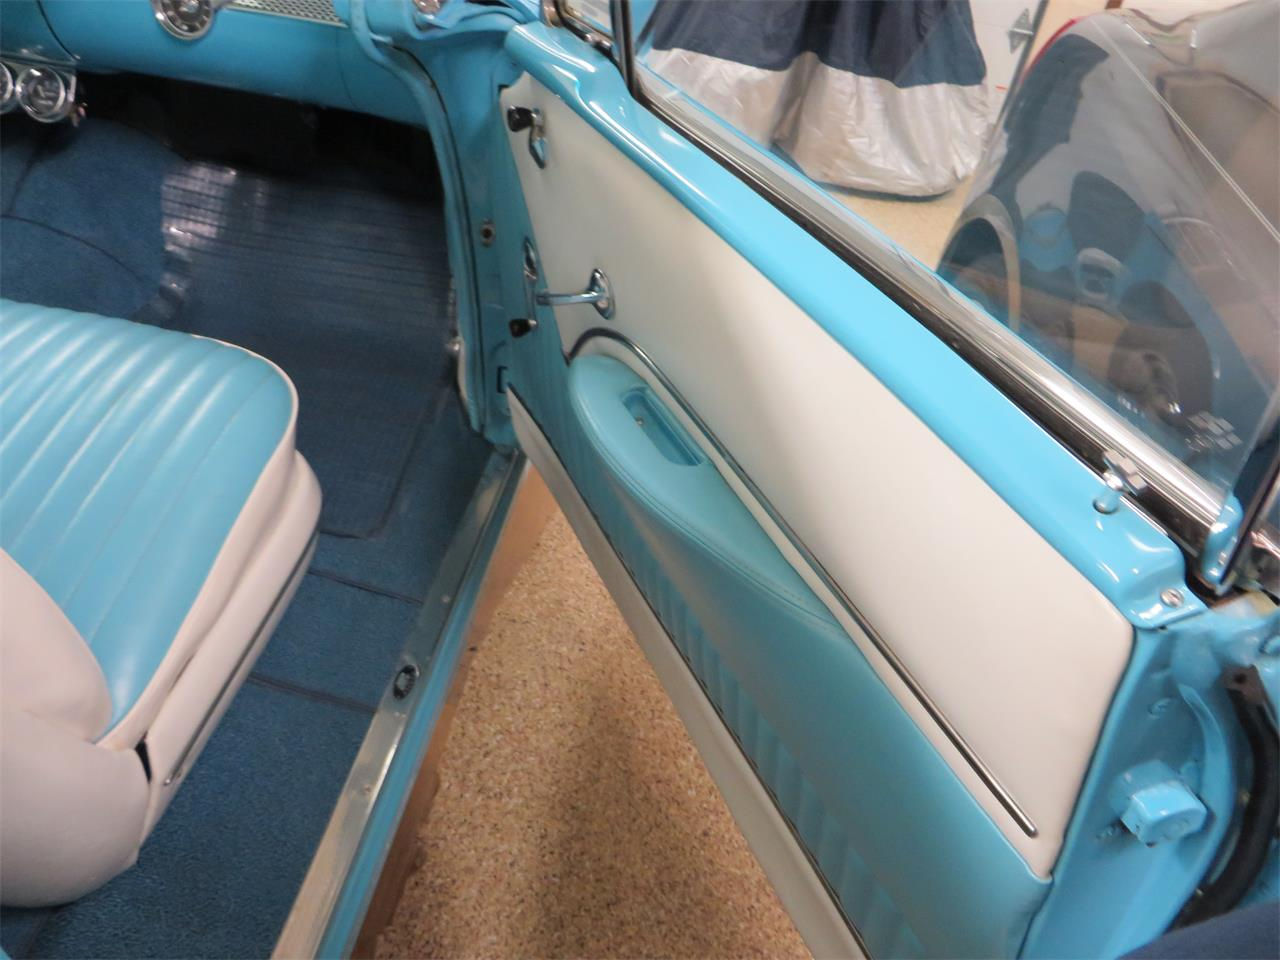 Large Picture of '55 Chevrolet Bel Air located in Chicago Illinois - $49,900.00 Offered by a Private Seller - H9N1